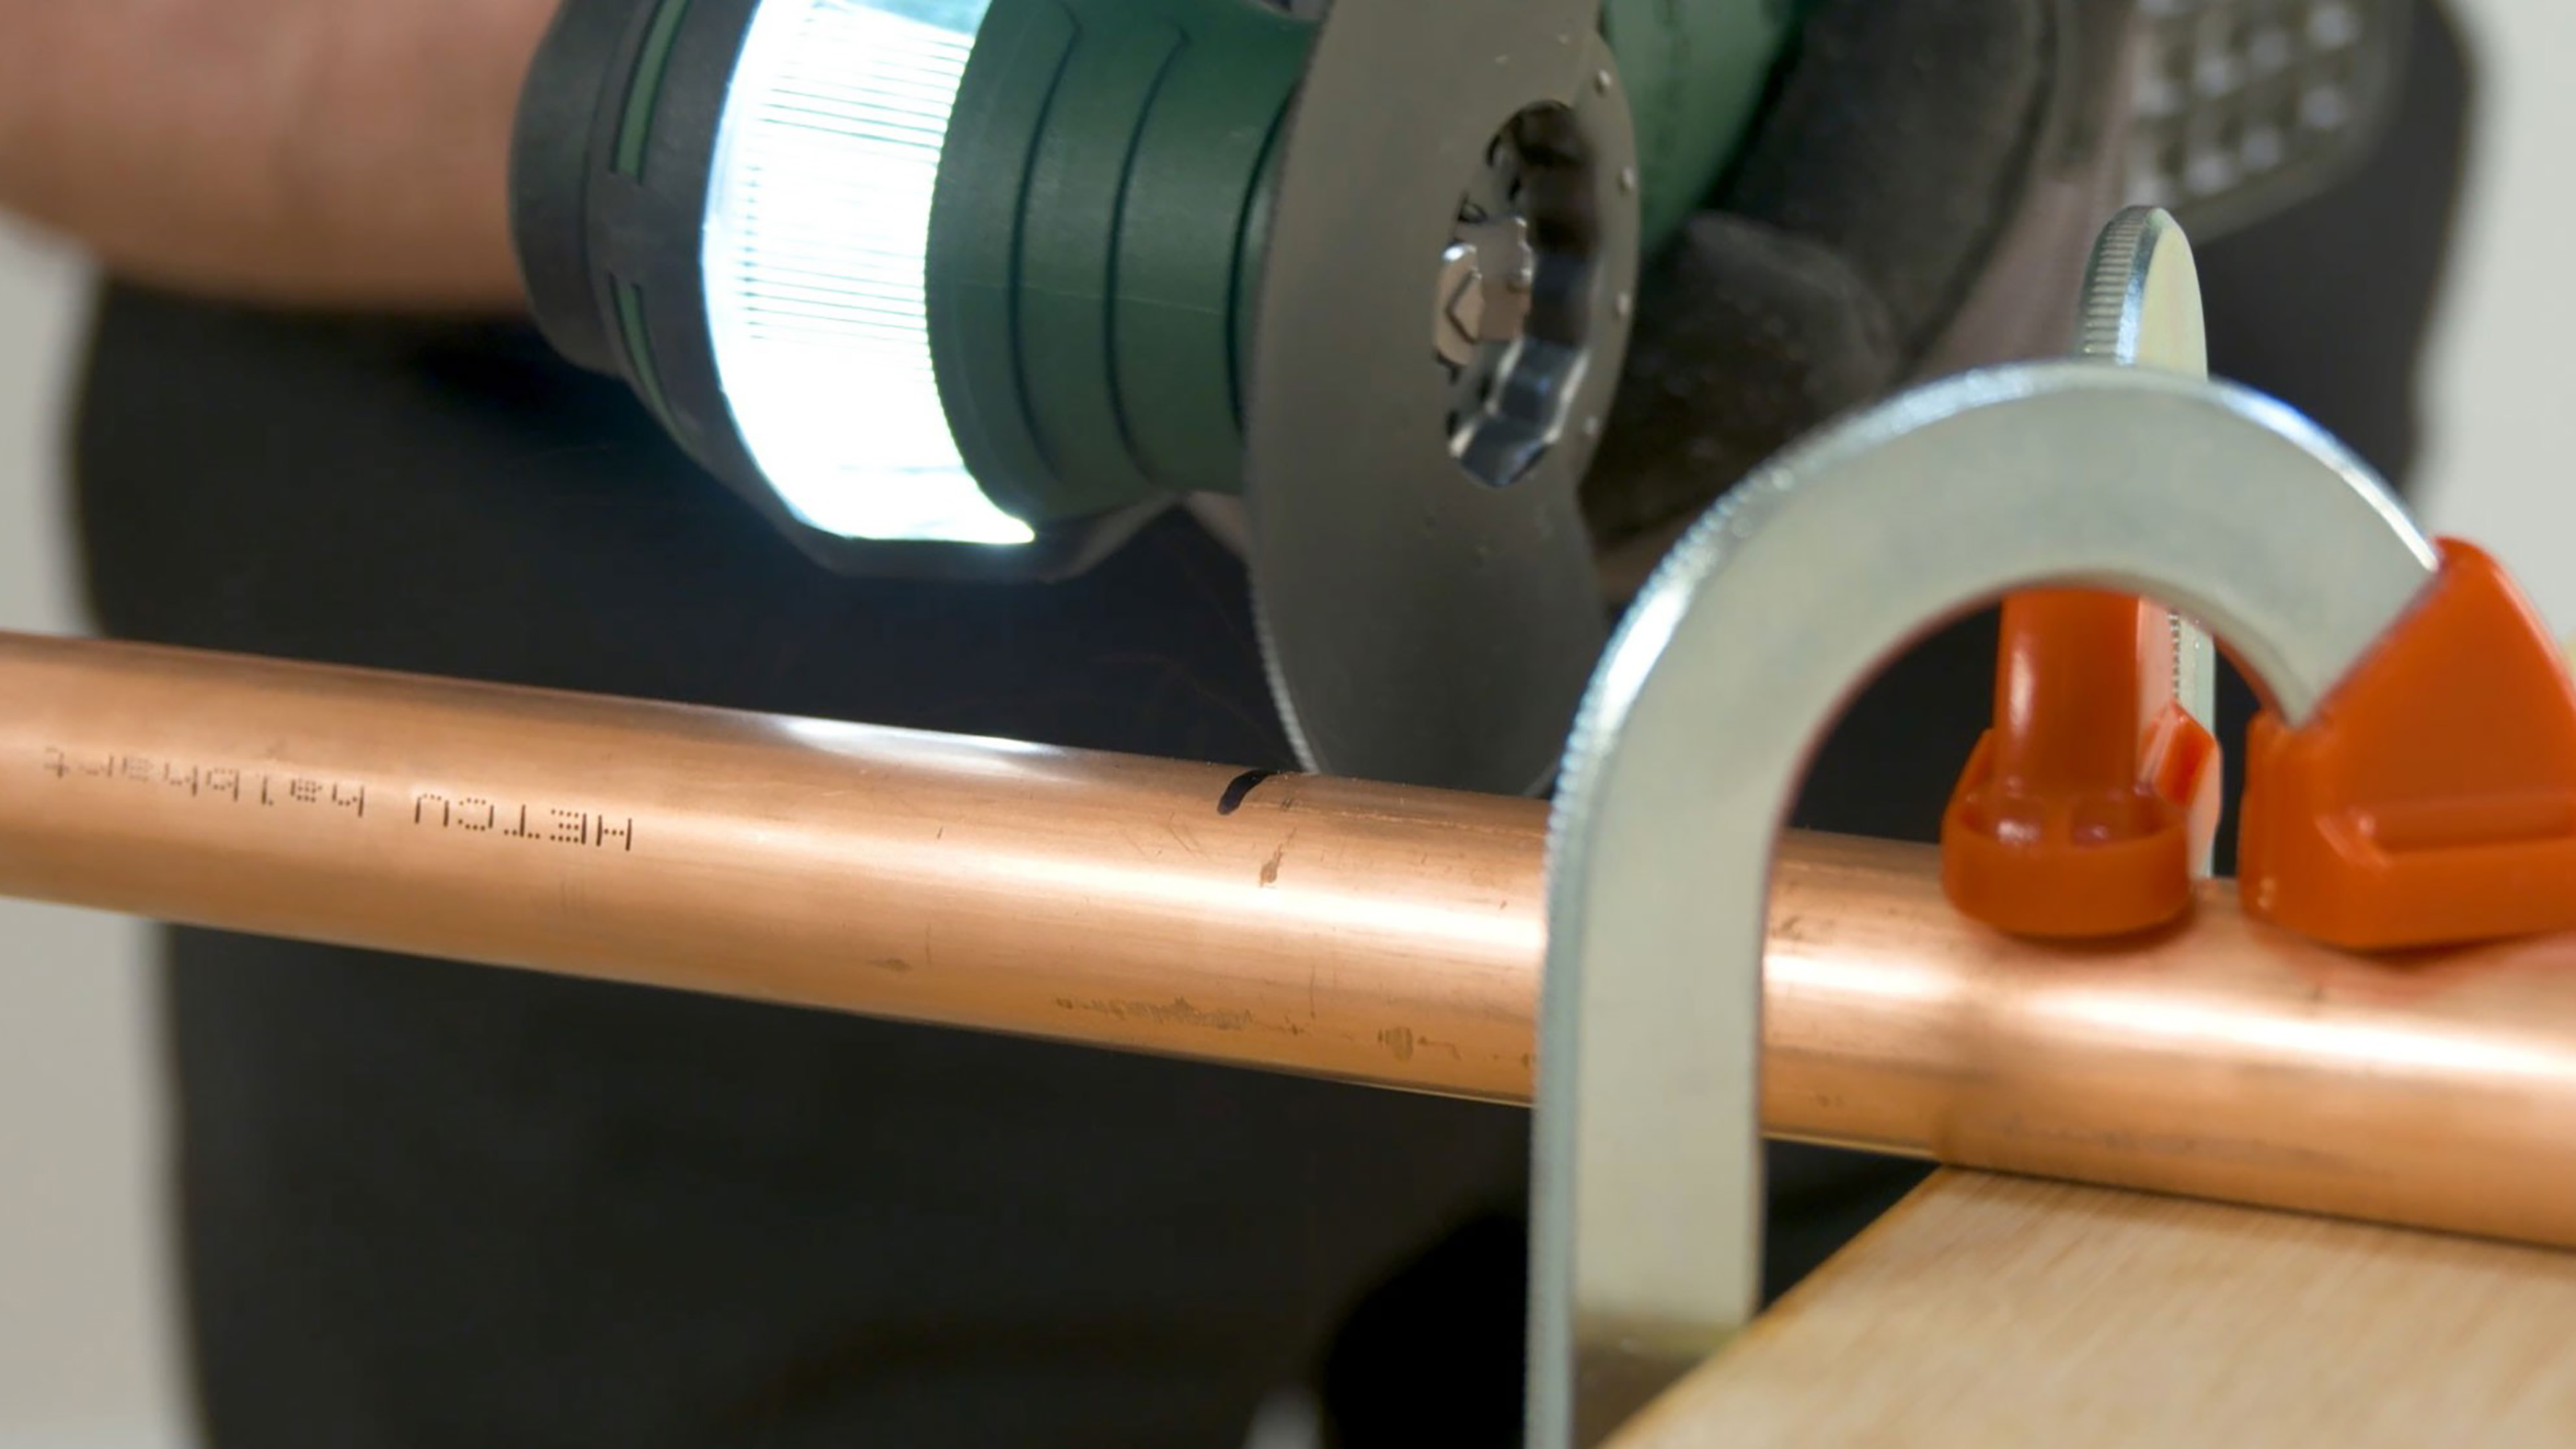 Cutting the Copper Pipe Using A Multi-Functional Tool